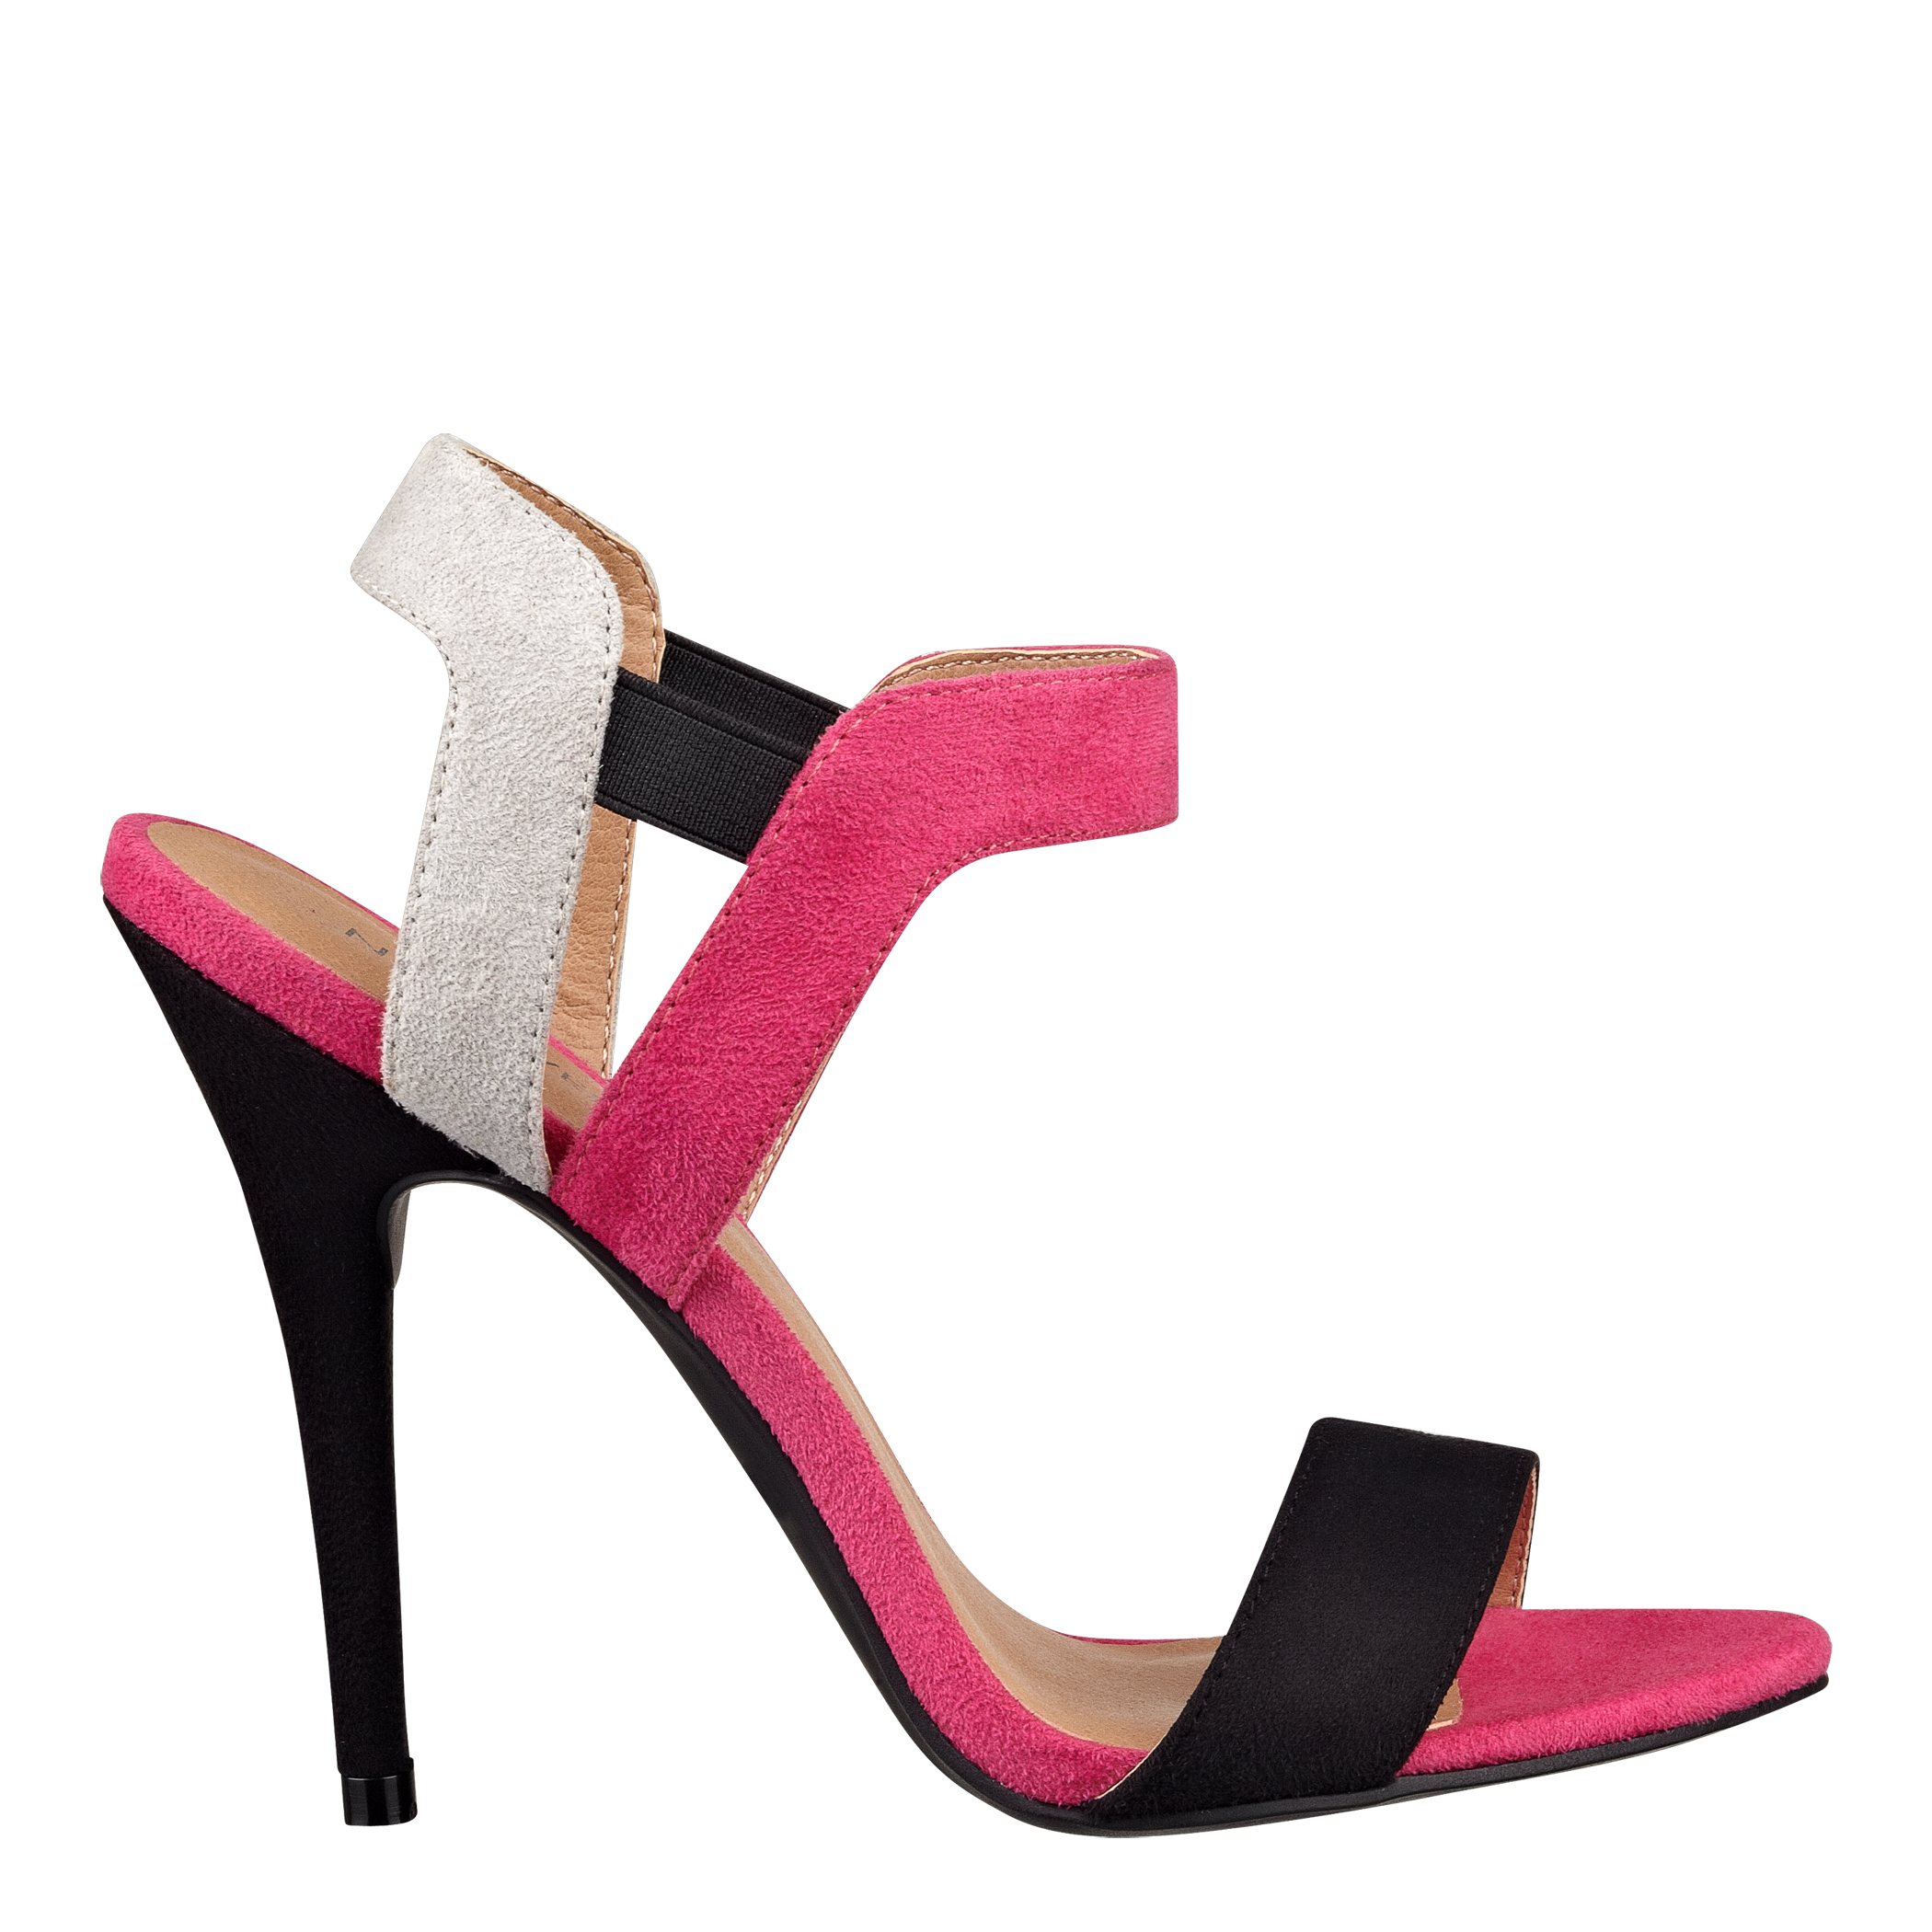 Latest Fashion of Stiletto & Heels Collection for women by Nine West(26)